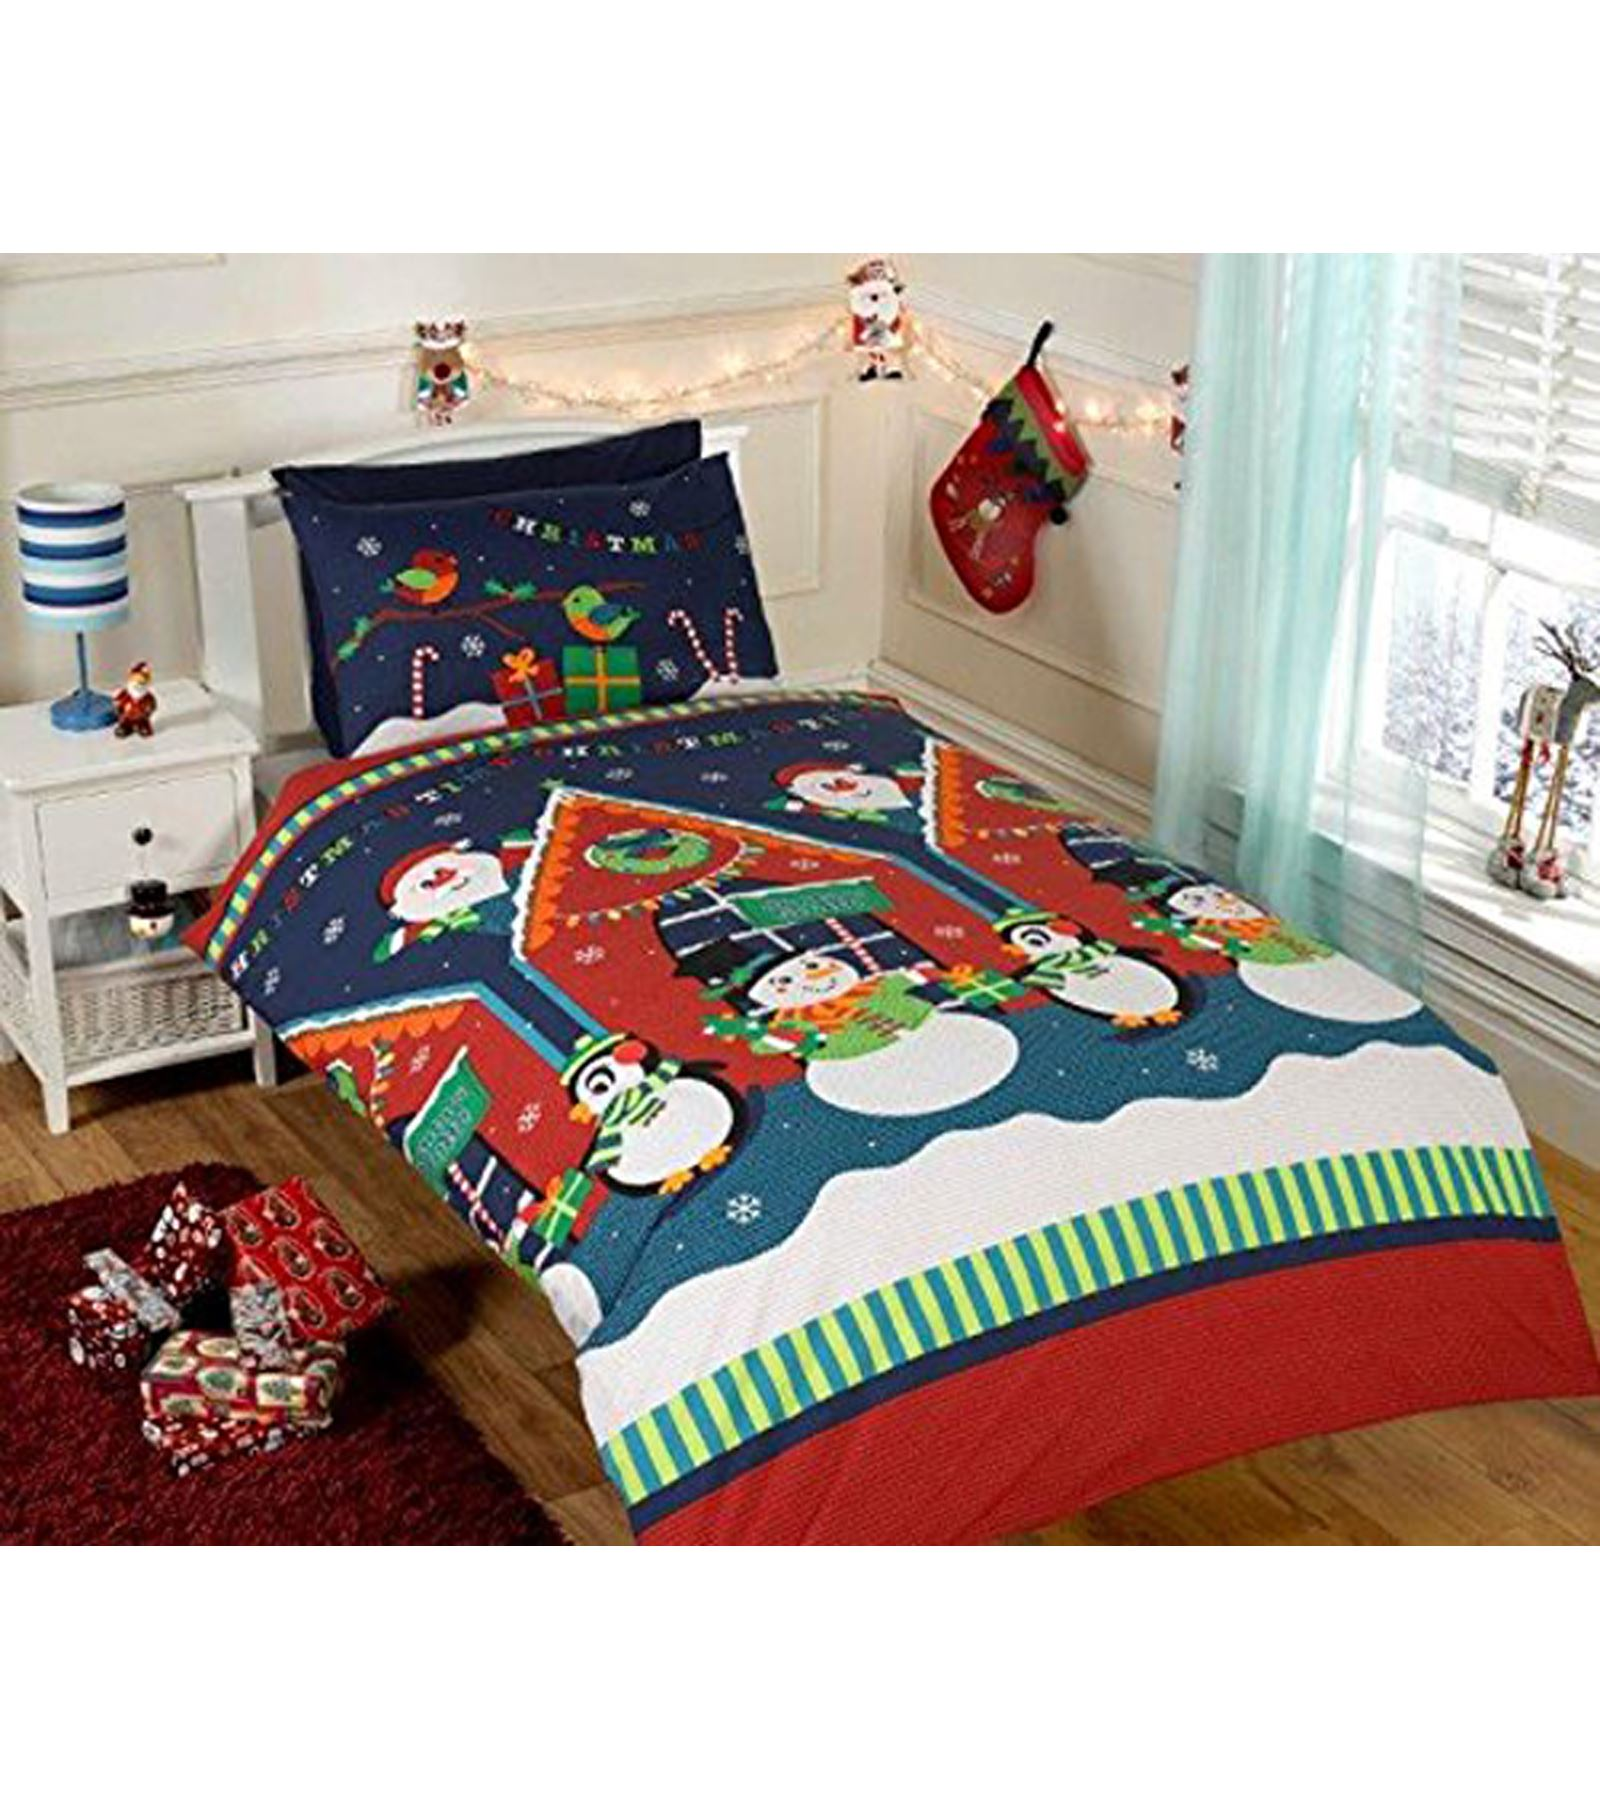 Christmas 2017 Bedding Duvet Cover Bright Colourful Festive Xmas ...